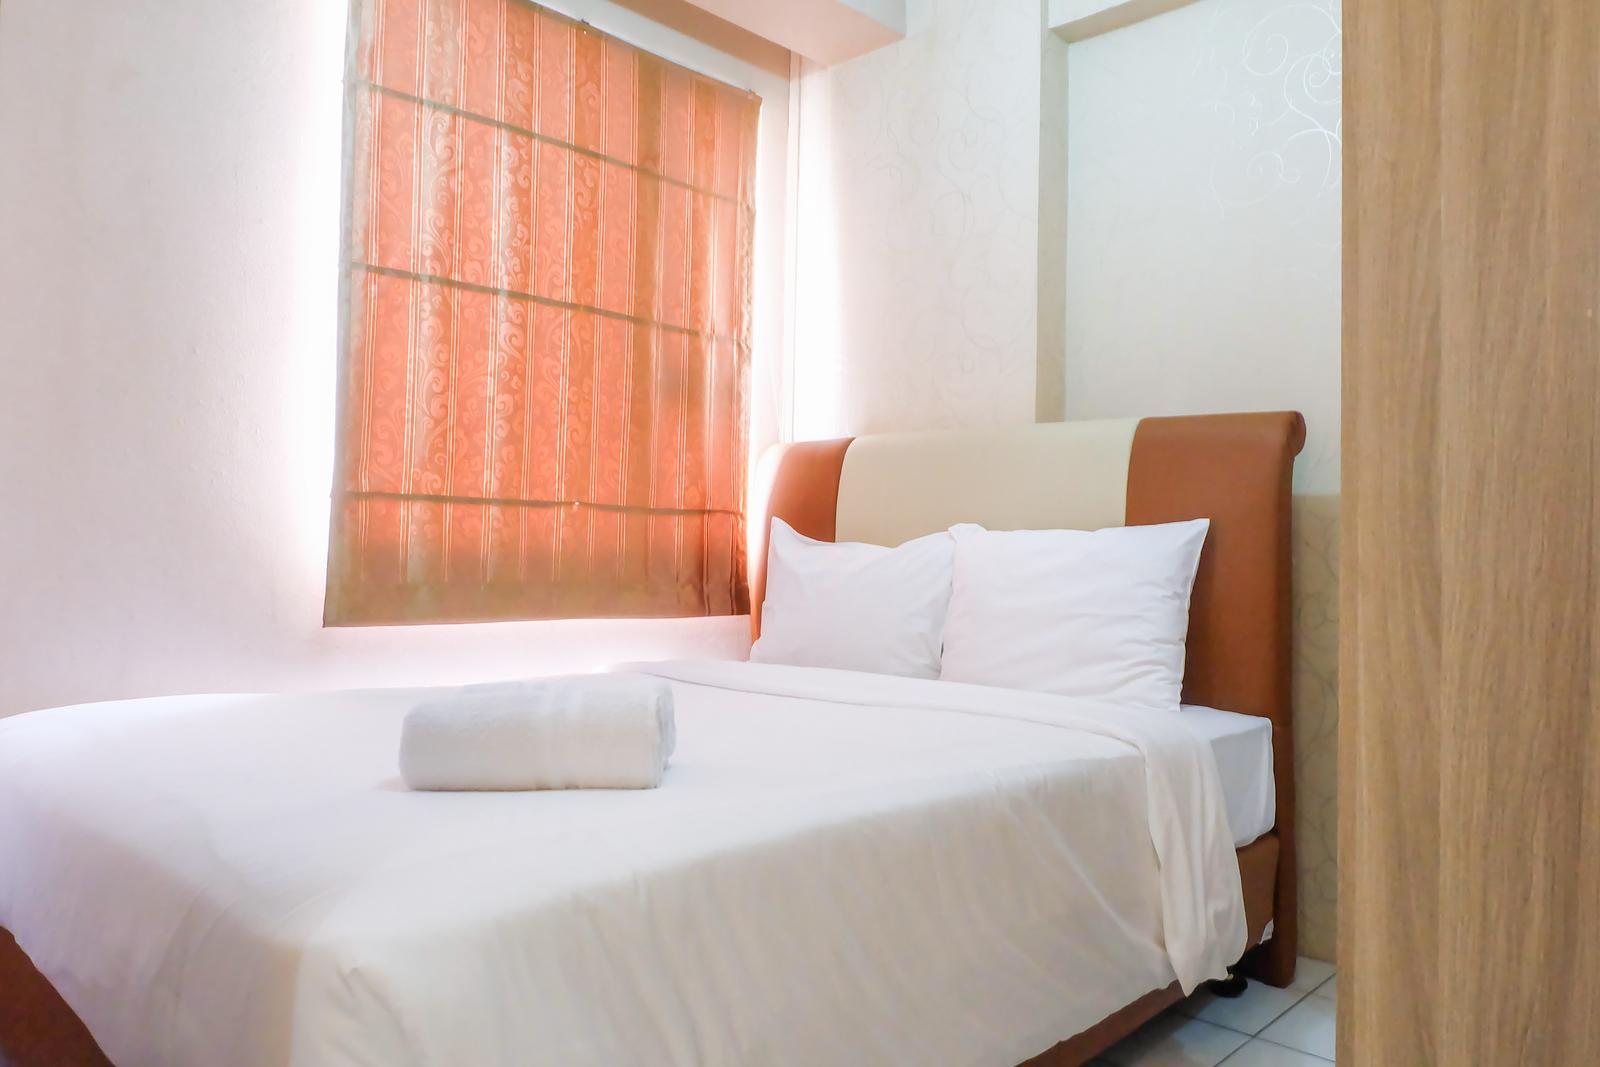 Menteng Square  - 2BR Apartment In Heart Of City Menteng Square By Travelio